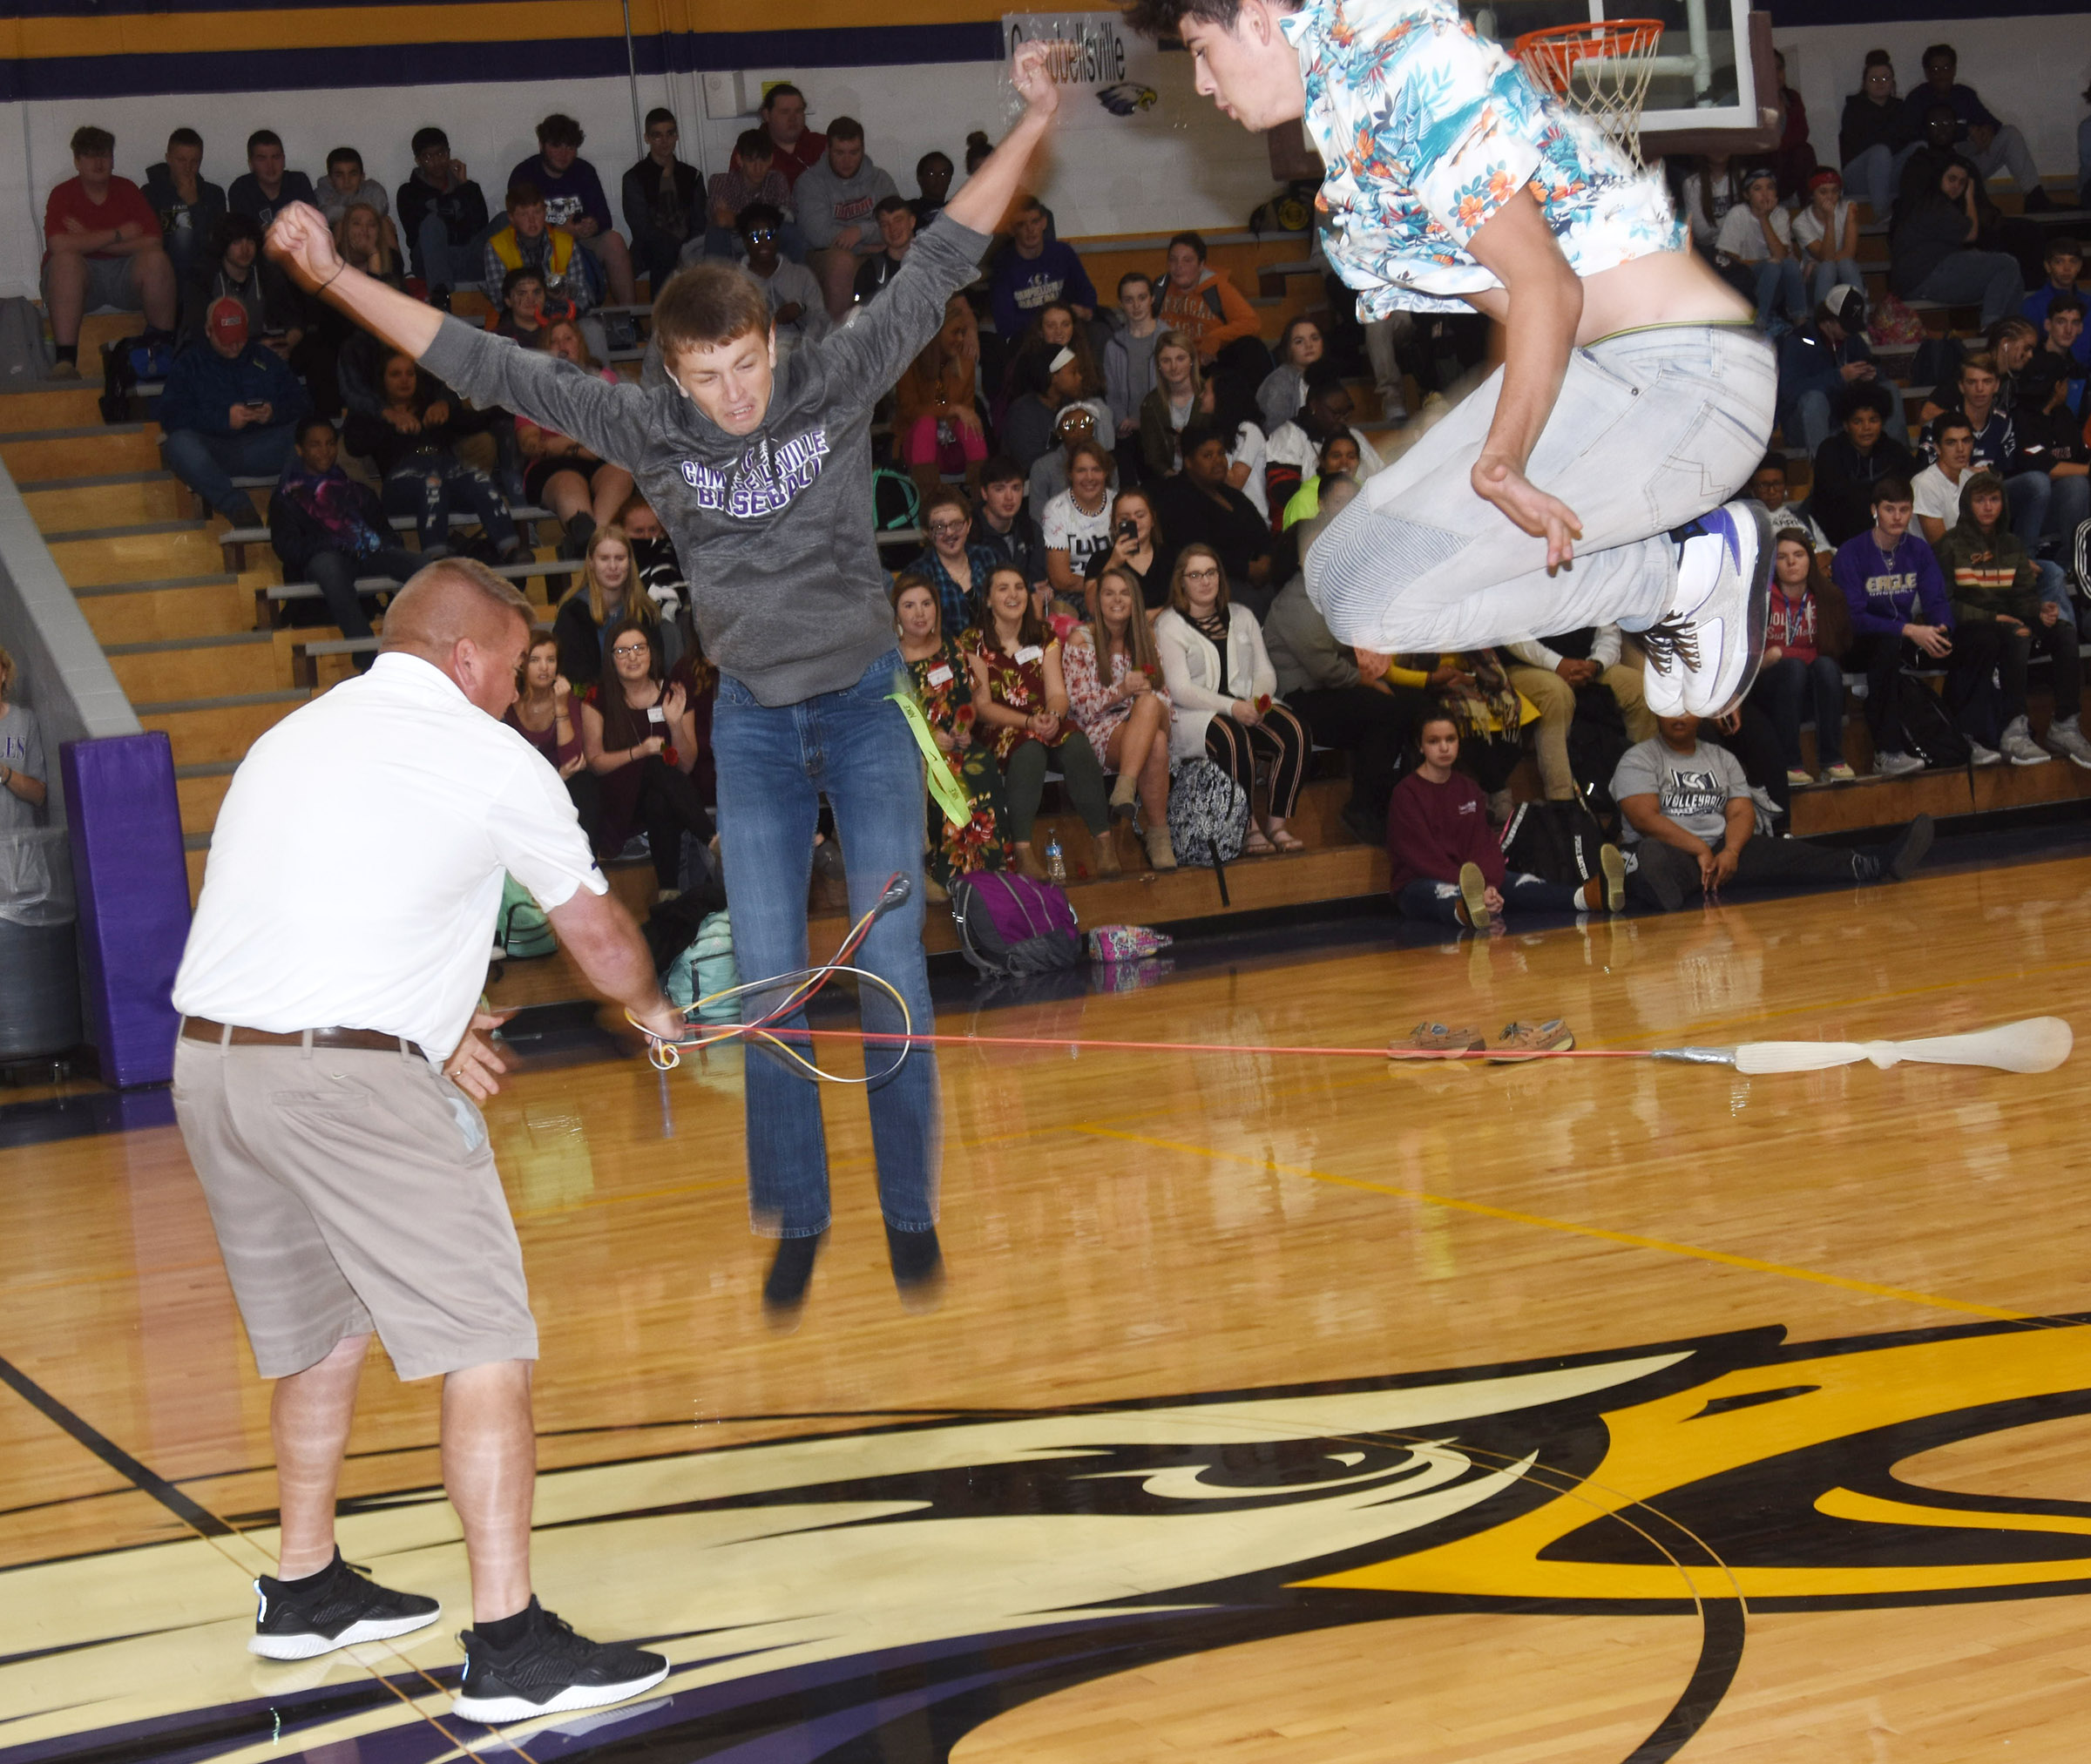 CHS students play Jake the Snake. The junior class won.